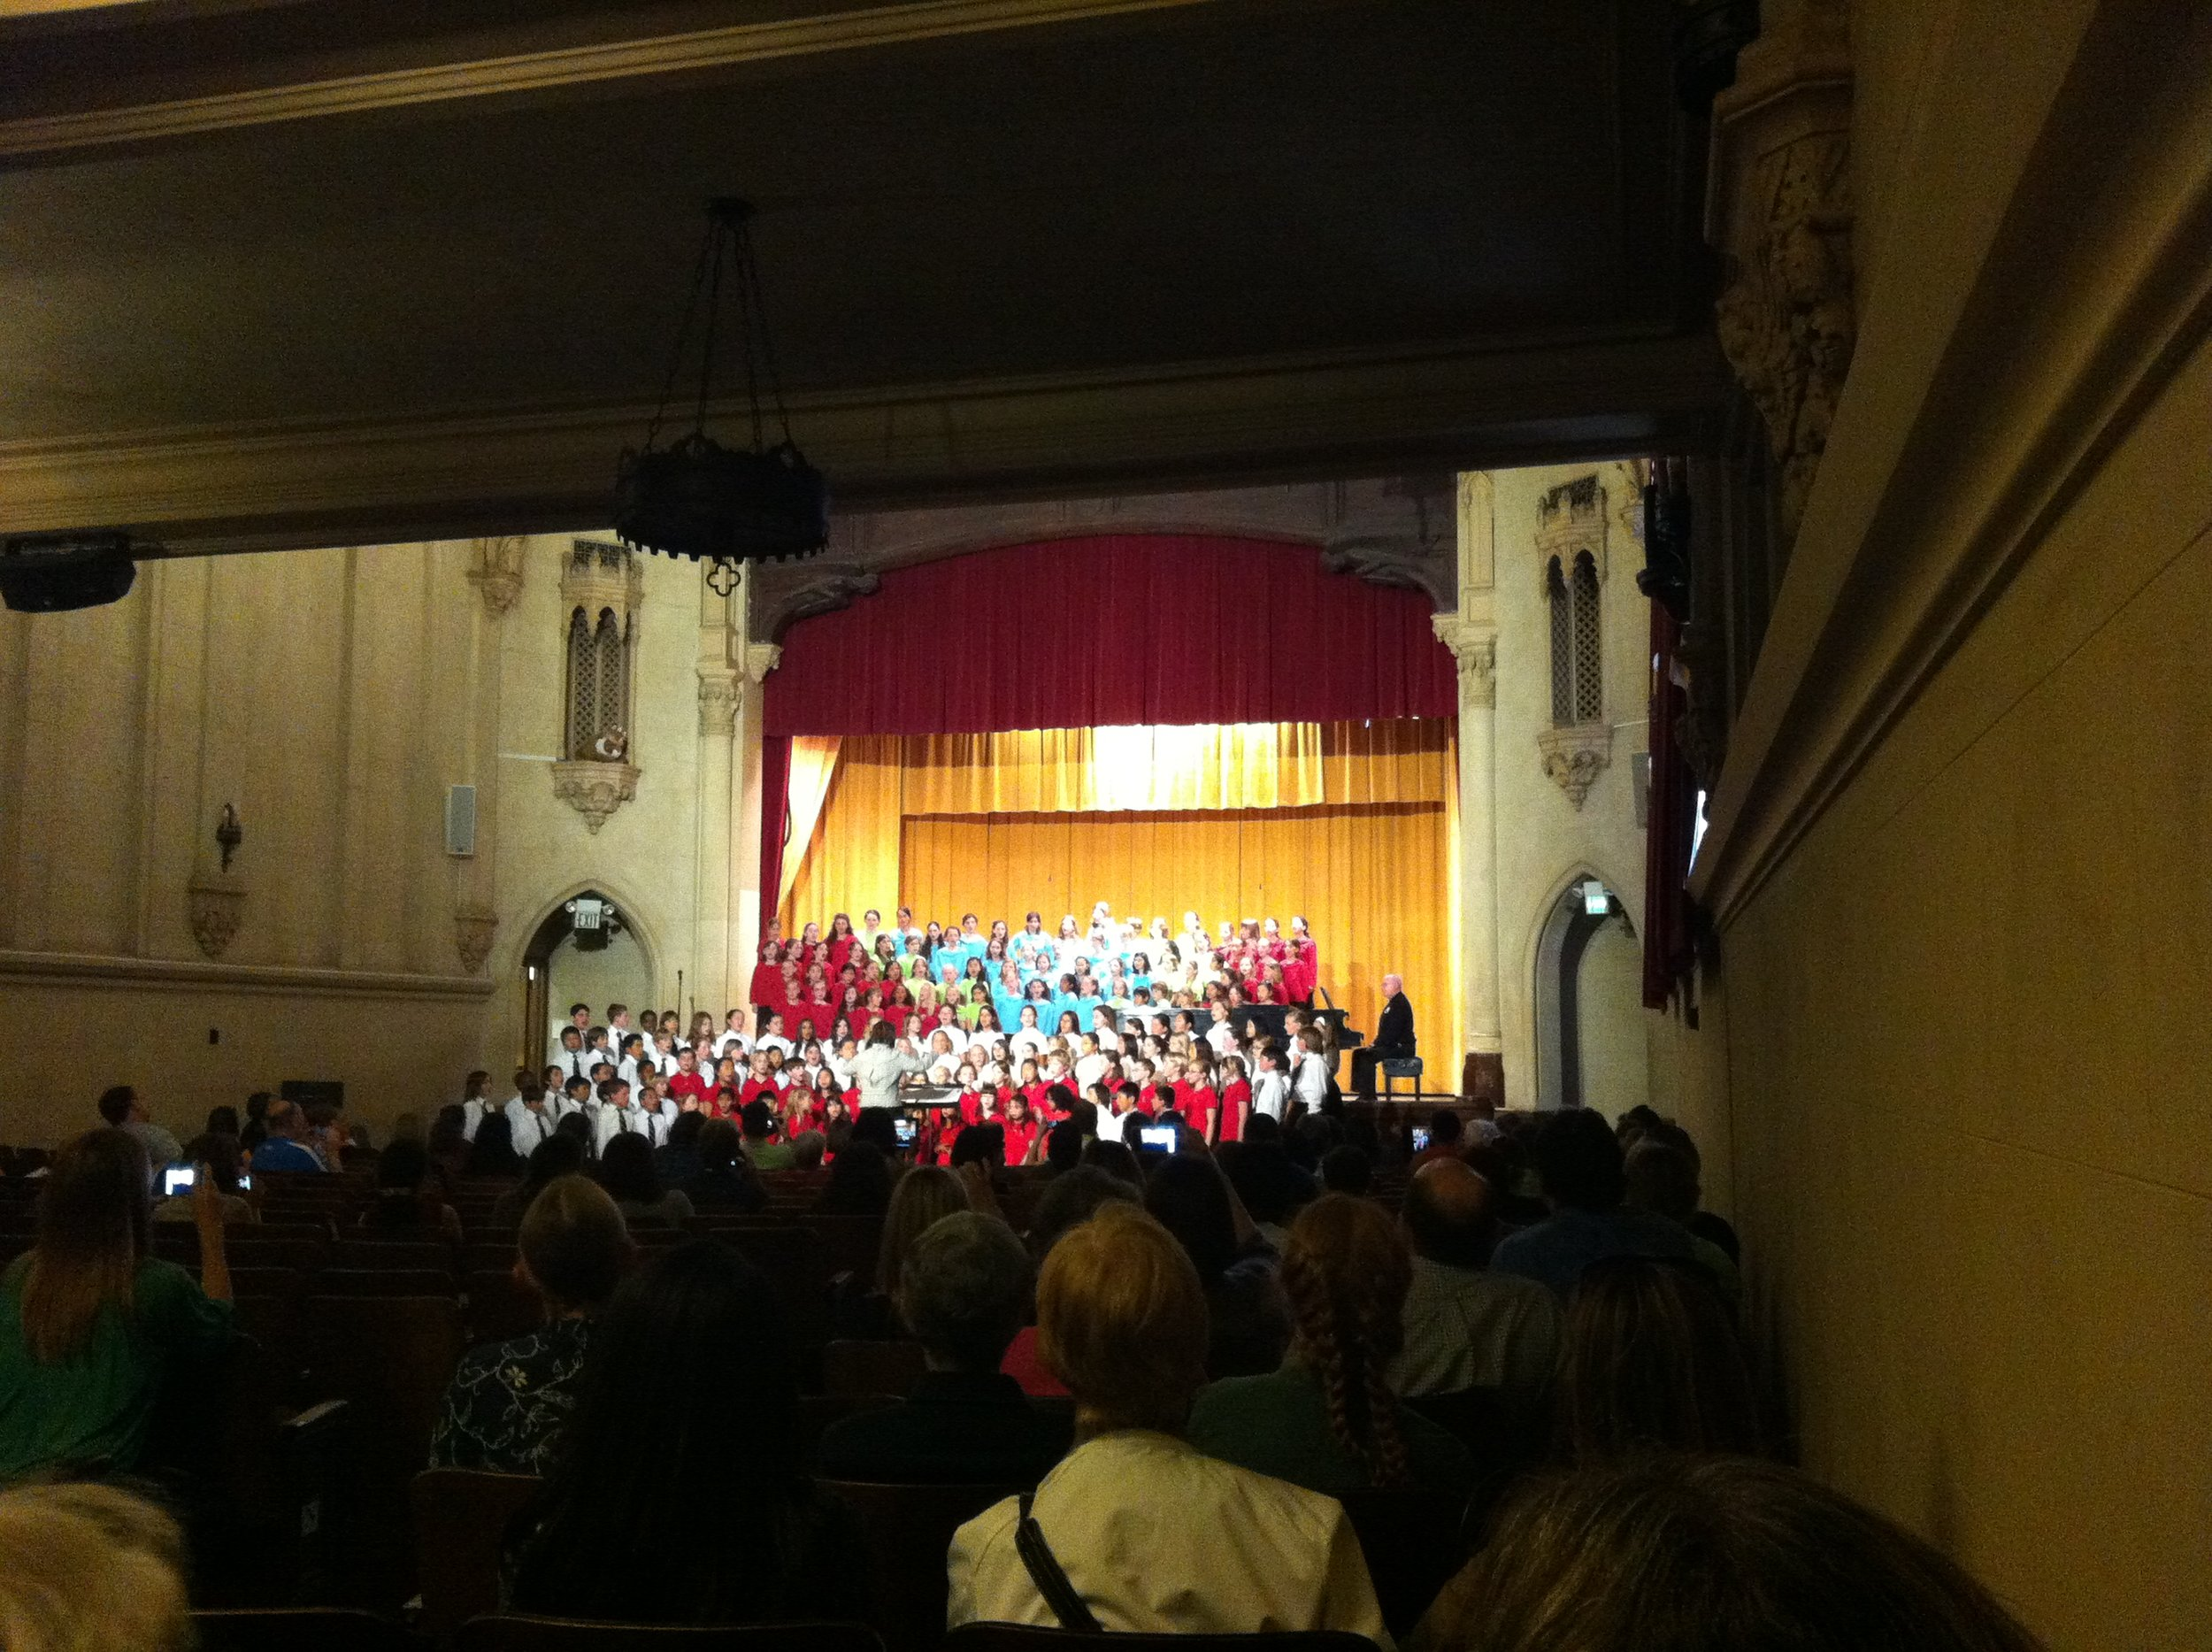 Margaret Clark   , clinician for the 2012 Children's Choral Festival, conducing a group performance at Holy Names High School .